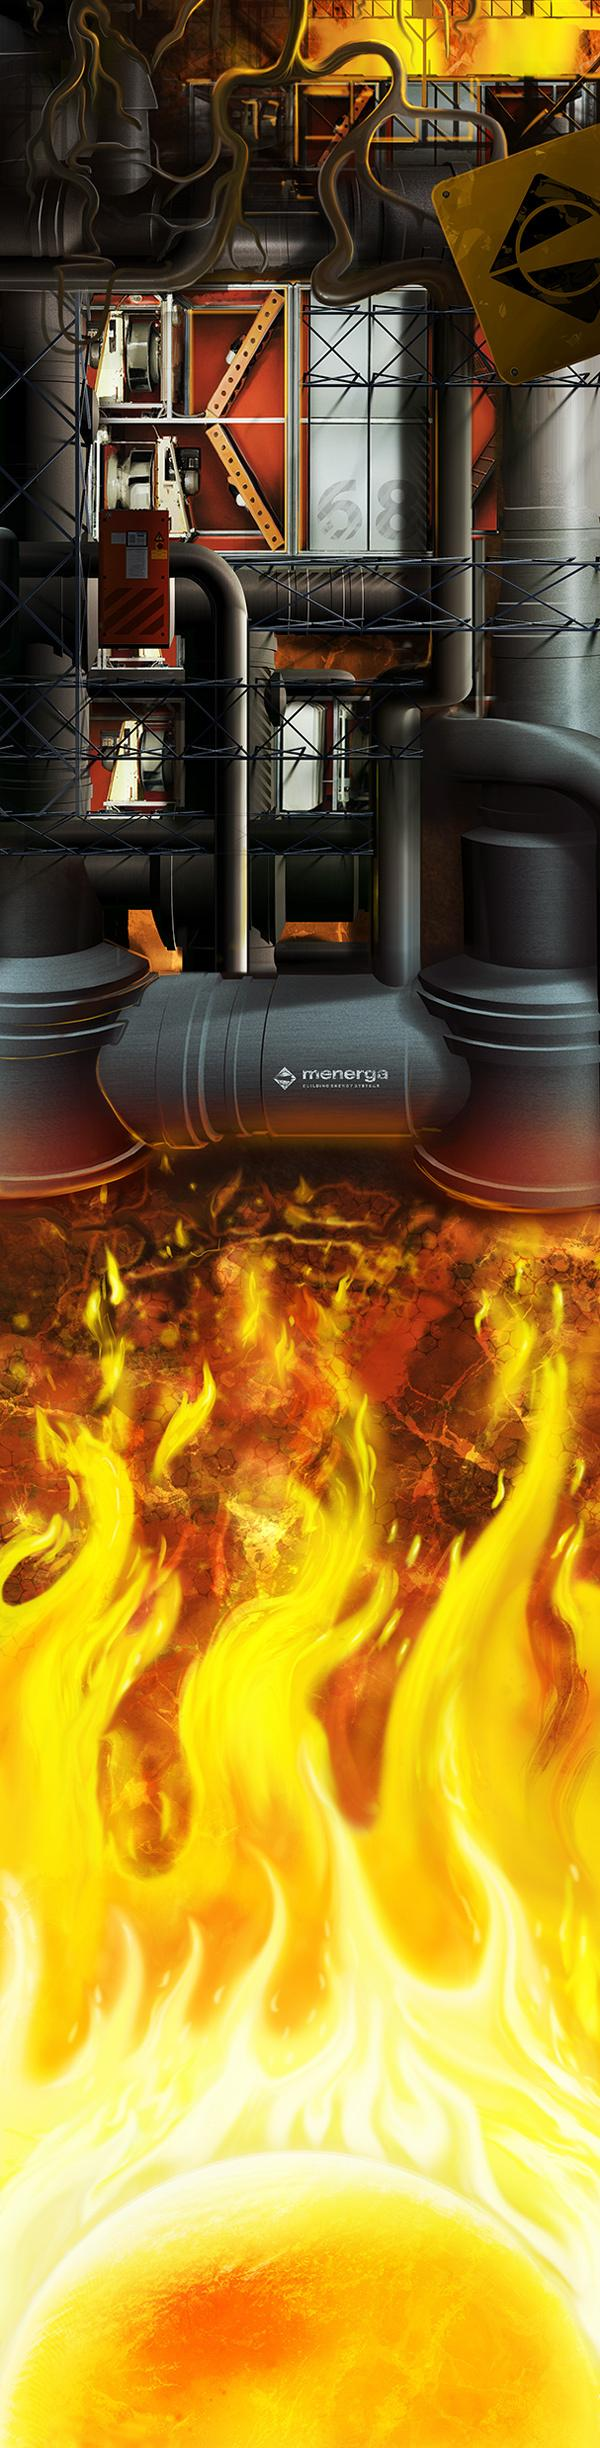 Menerga Energy System by David Fuhrer; photoshop resource collected by psd-dude.com from Behance Network